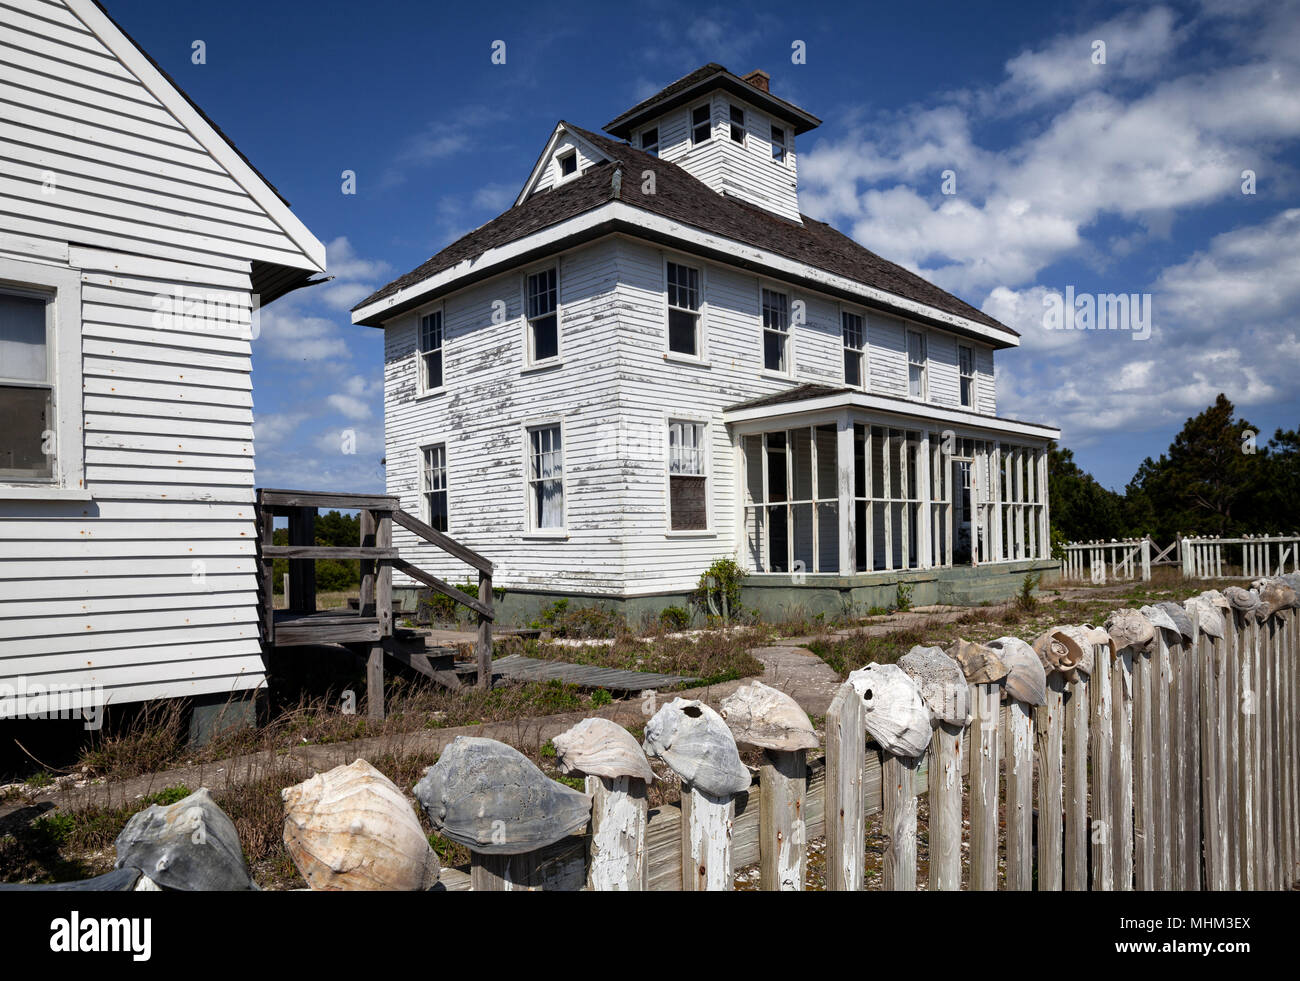 NC01540-00...NORTH CAROLINA - Old Coast Guard Station on South Core Bank in Cape Lookout National Park. - Stock Image